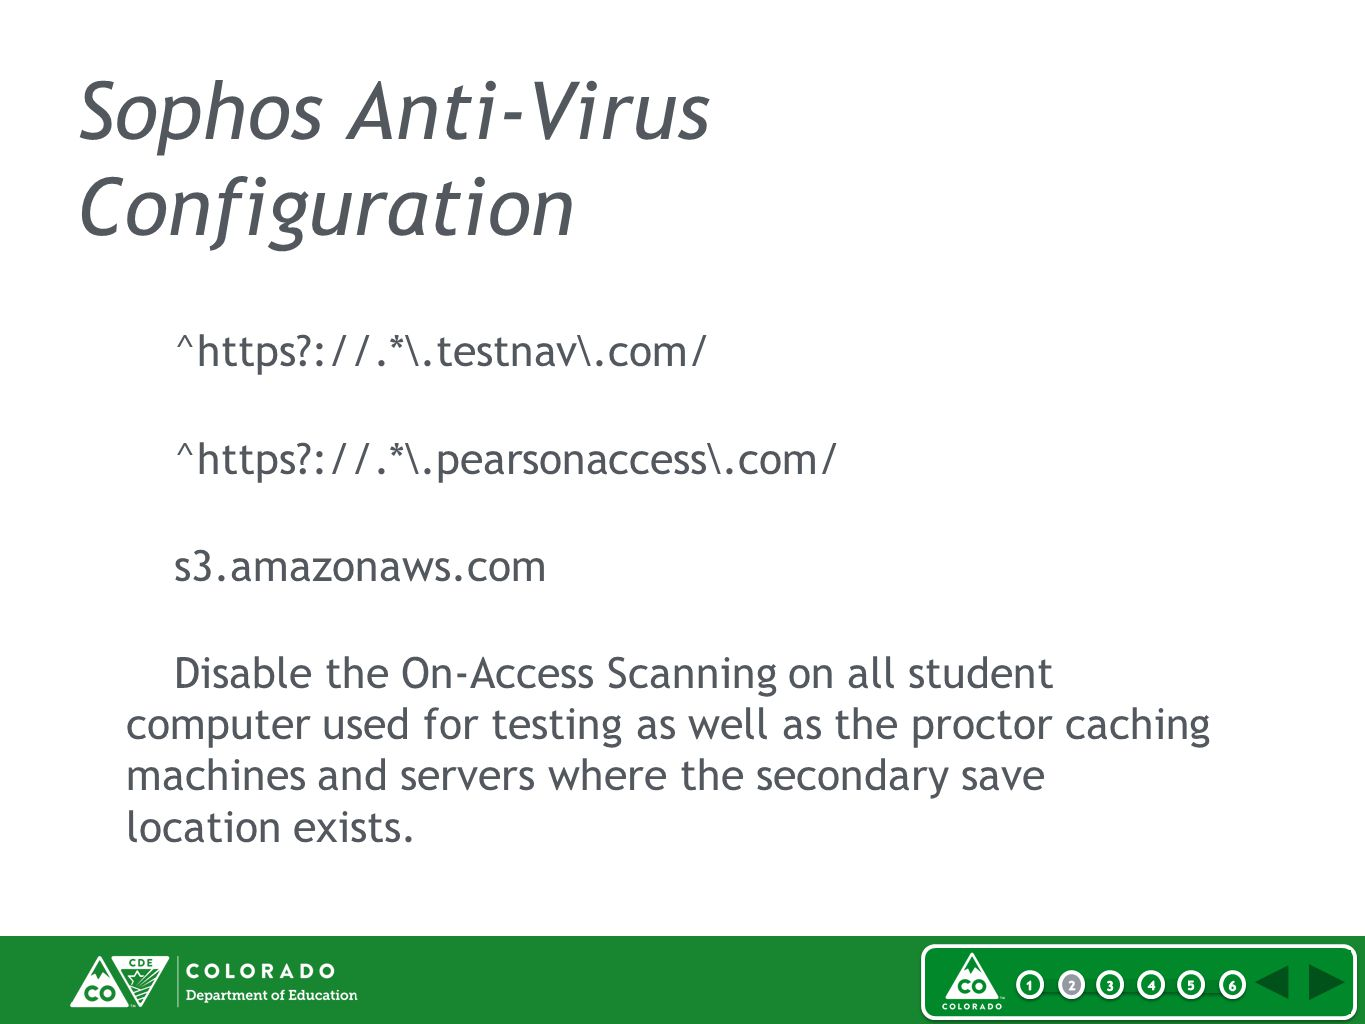 Sophos Anti-Virus Configuration ^https ://.*\.testnav\.com/ ^https ://.*\.pearsonaccess\.com/ s3.amazonaws.com Disable the On-Access Scanning on all student computer used for testing as well as the proctor caching machines and servers where the secondary save location exists.